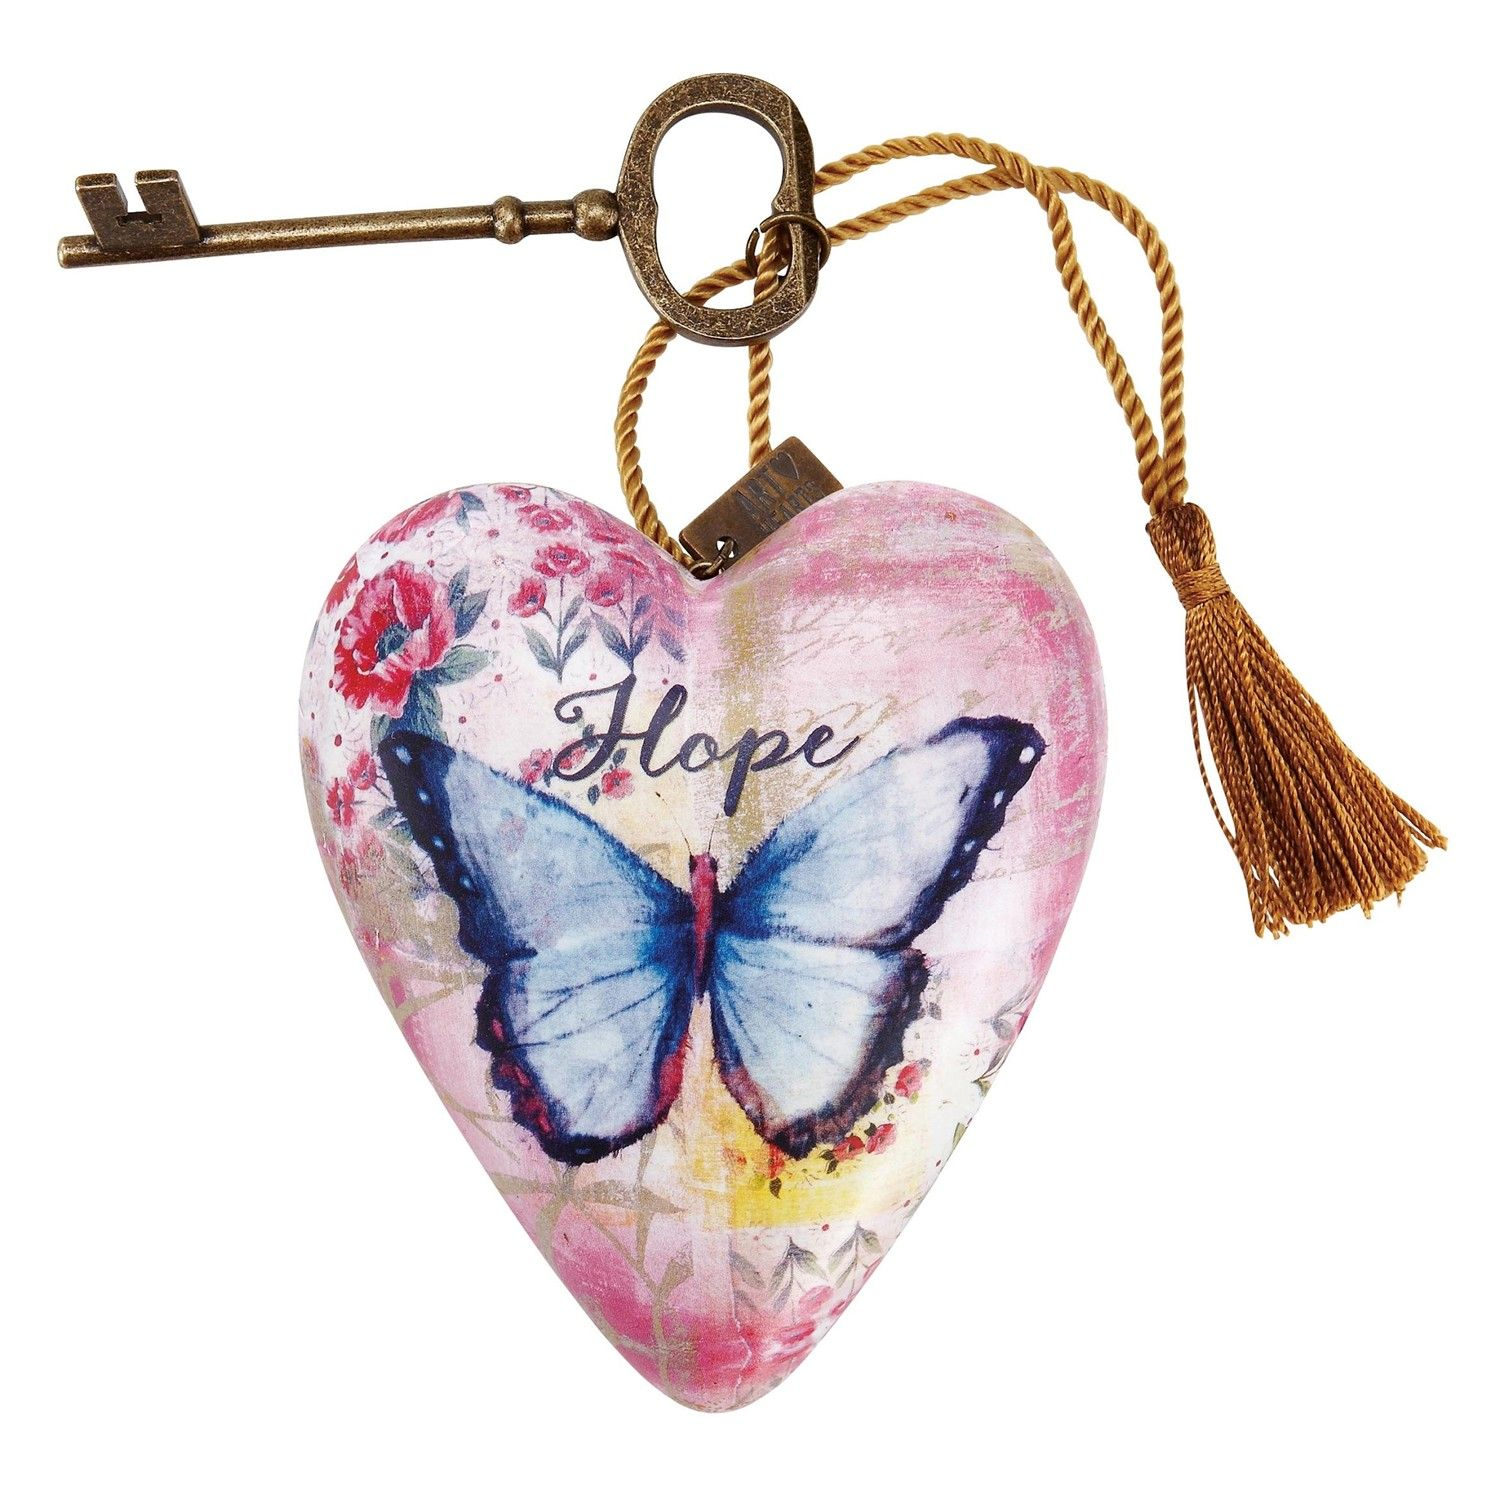 Hope Art Heart These Limited Edition Sculpted Hearts Are Individually Designed By Different Artists The Artist S Name Appea Hope Art Heart Gifts Heart Art